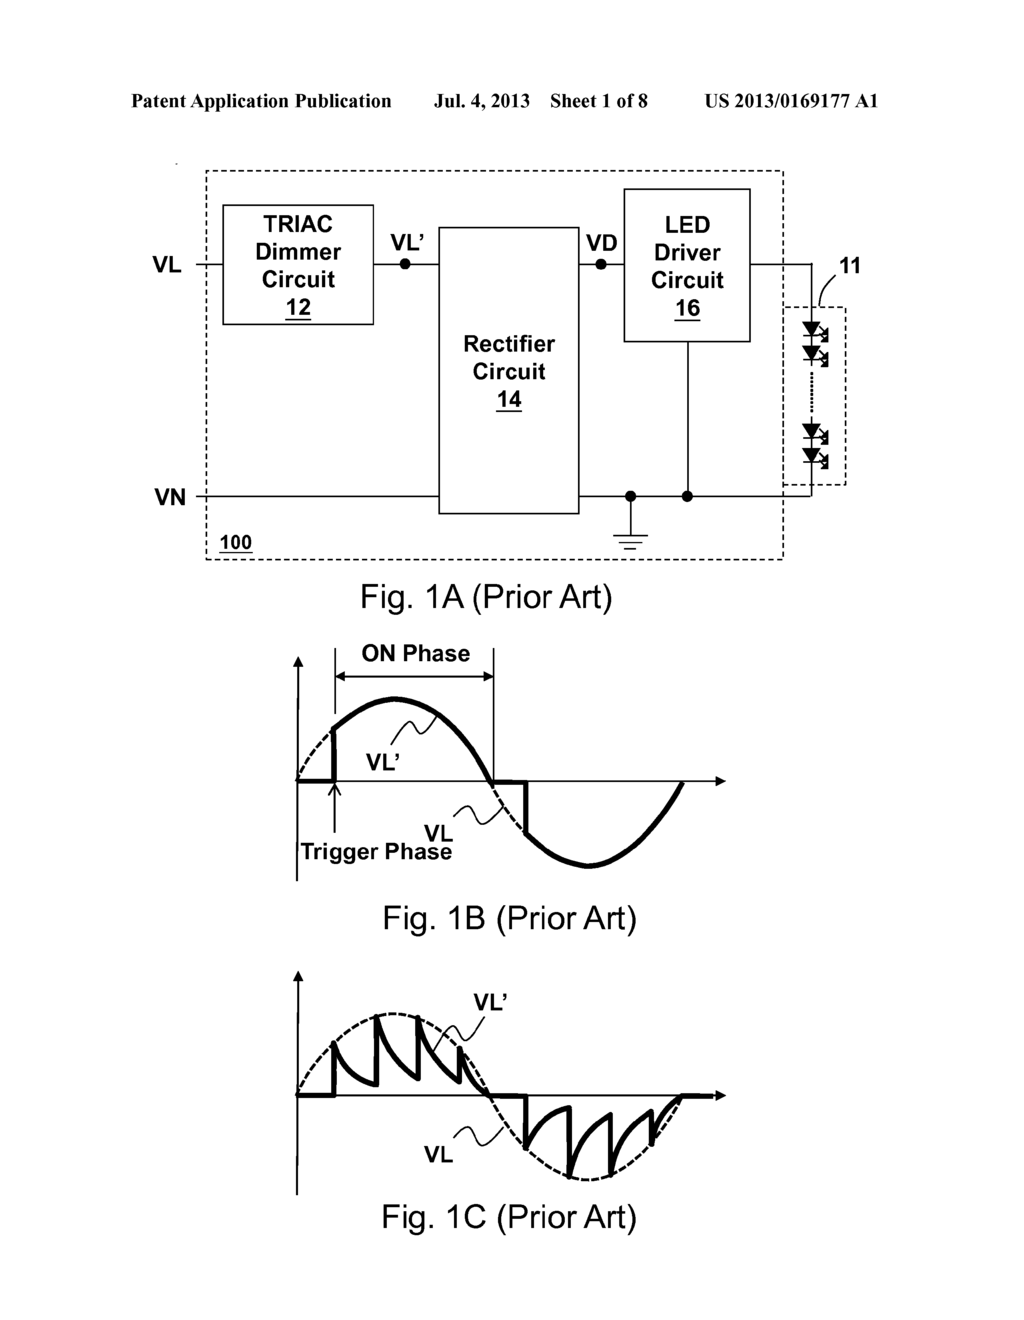 Active Bleeder Circuit Triggering Triac In All Phase And Light Dimmer Diagram Emitting Device Power Supply Control Method Using The